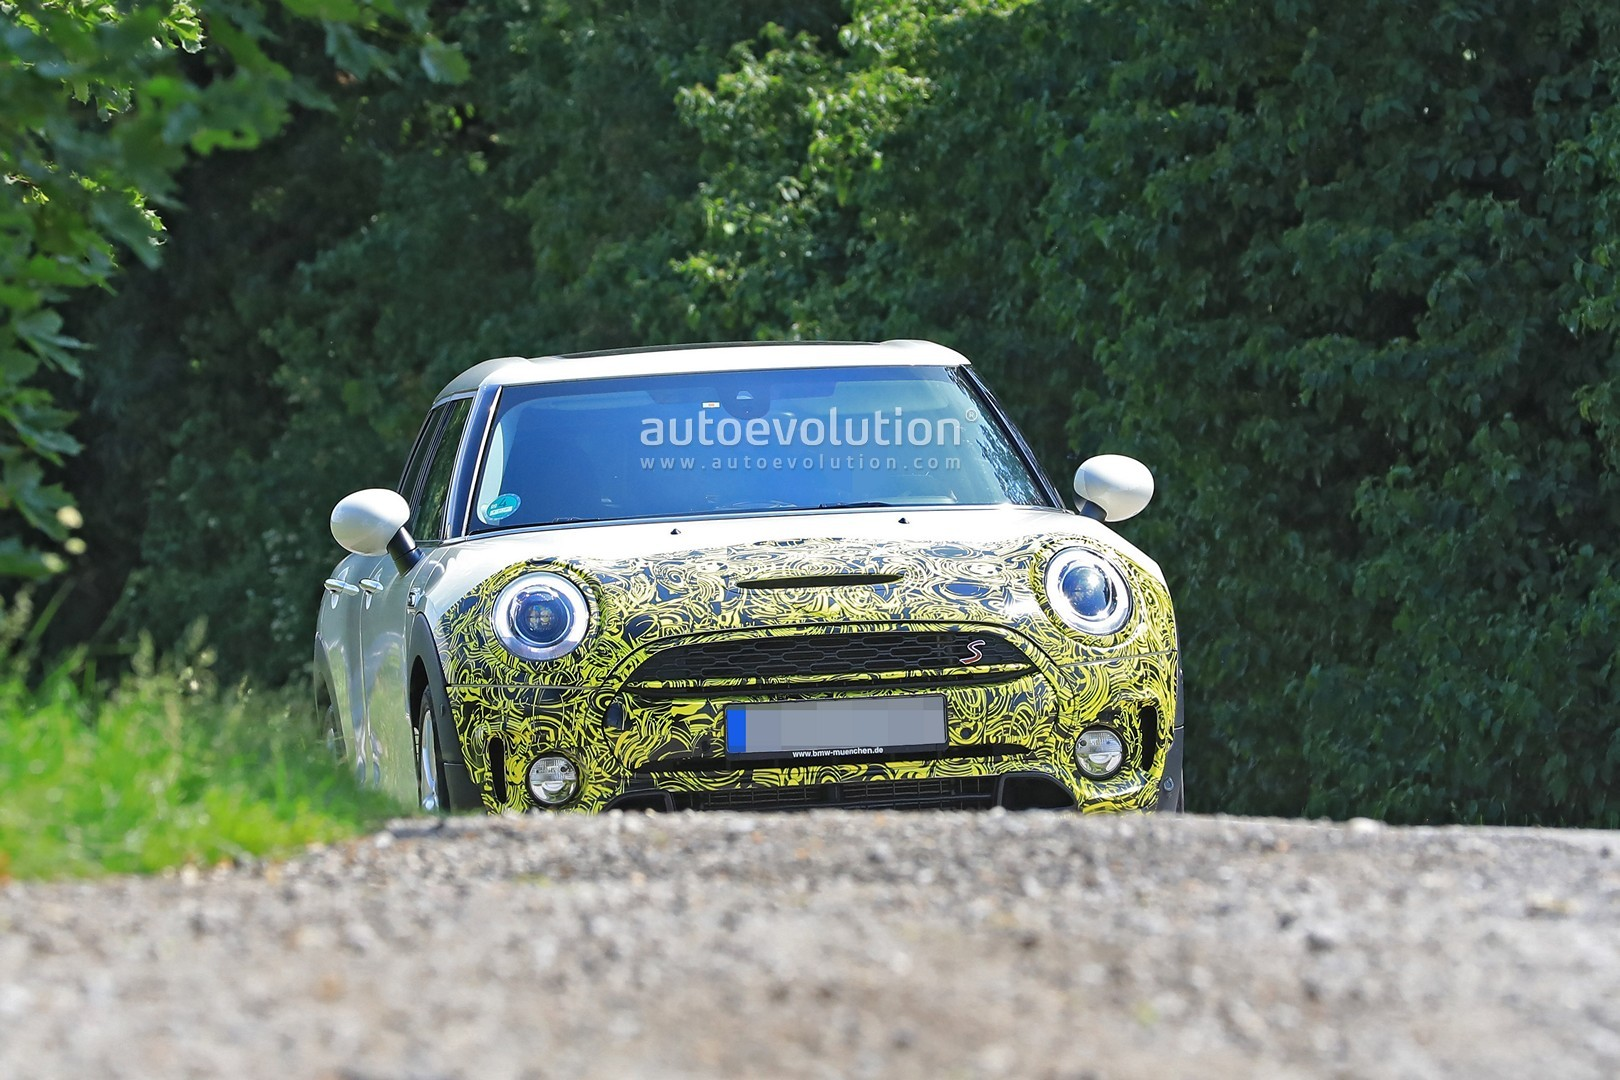 2019-mini-clubman-facelift-spied-for-the-first-time-could-be-testing-dct_1.jpg